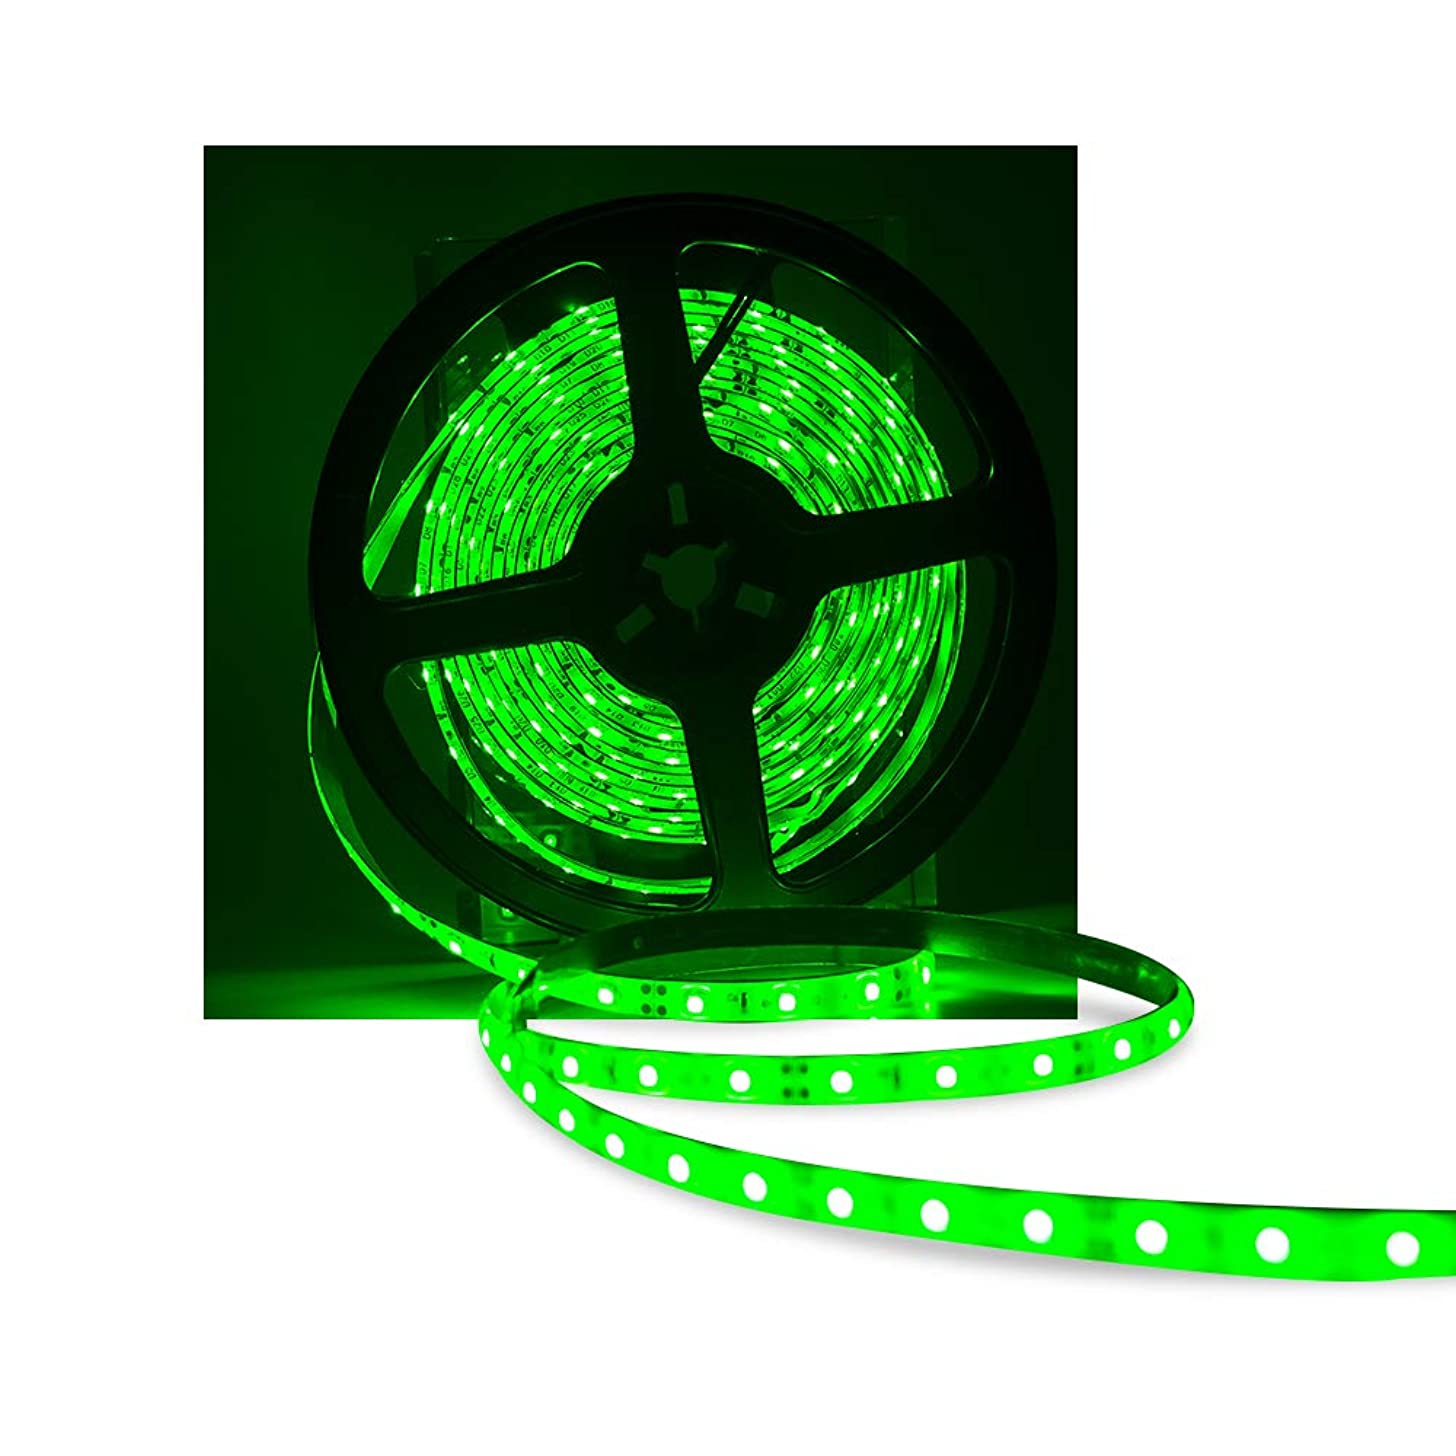 XINKAITE Waterproof IP65 Led Strip Lights, 3528 16.4 Ft (5M) 300leds 60leds/m, Flexible LED Light Tape for Boats, Bathroom, Mirror, Ceiling, and Outdoor Use, Power Supply not Included